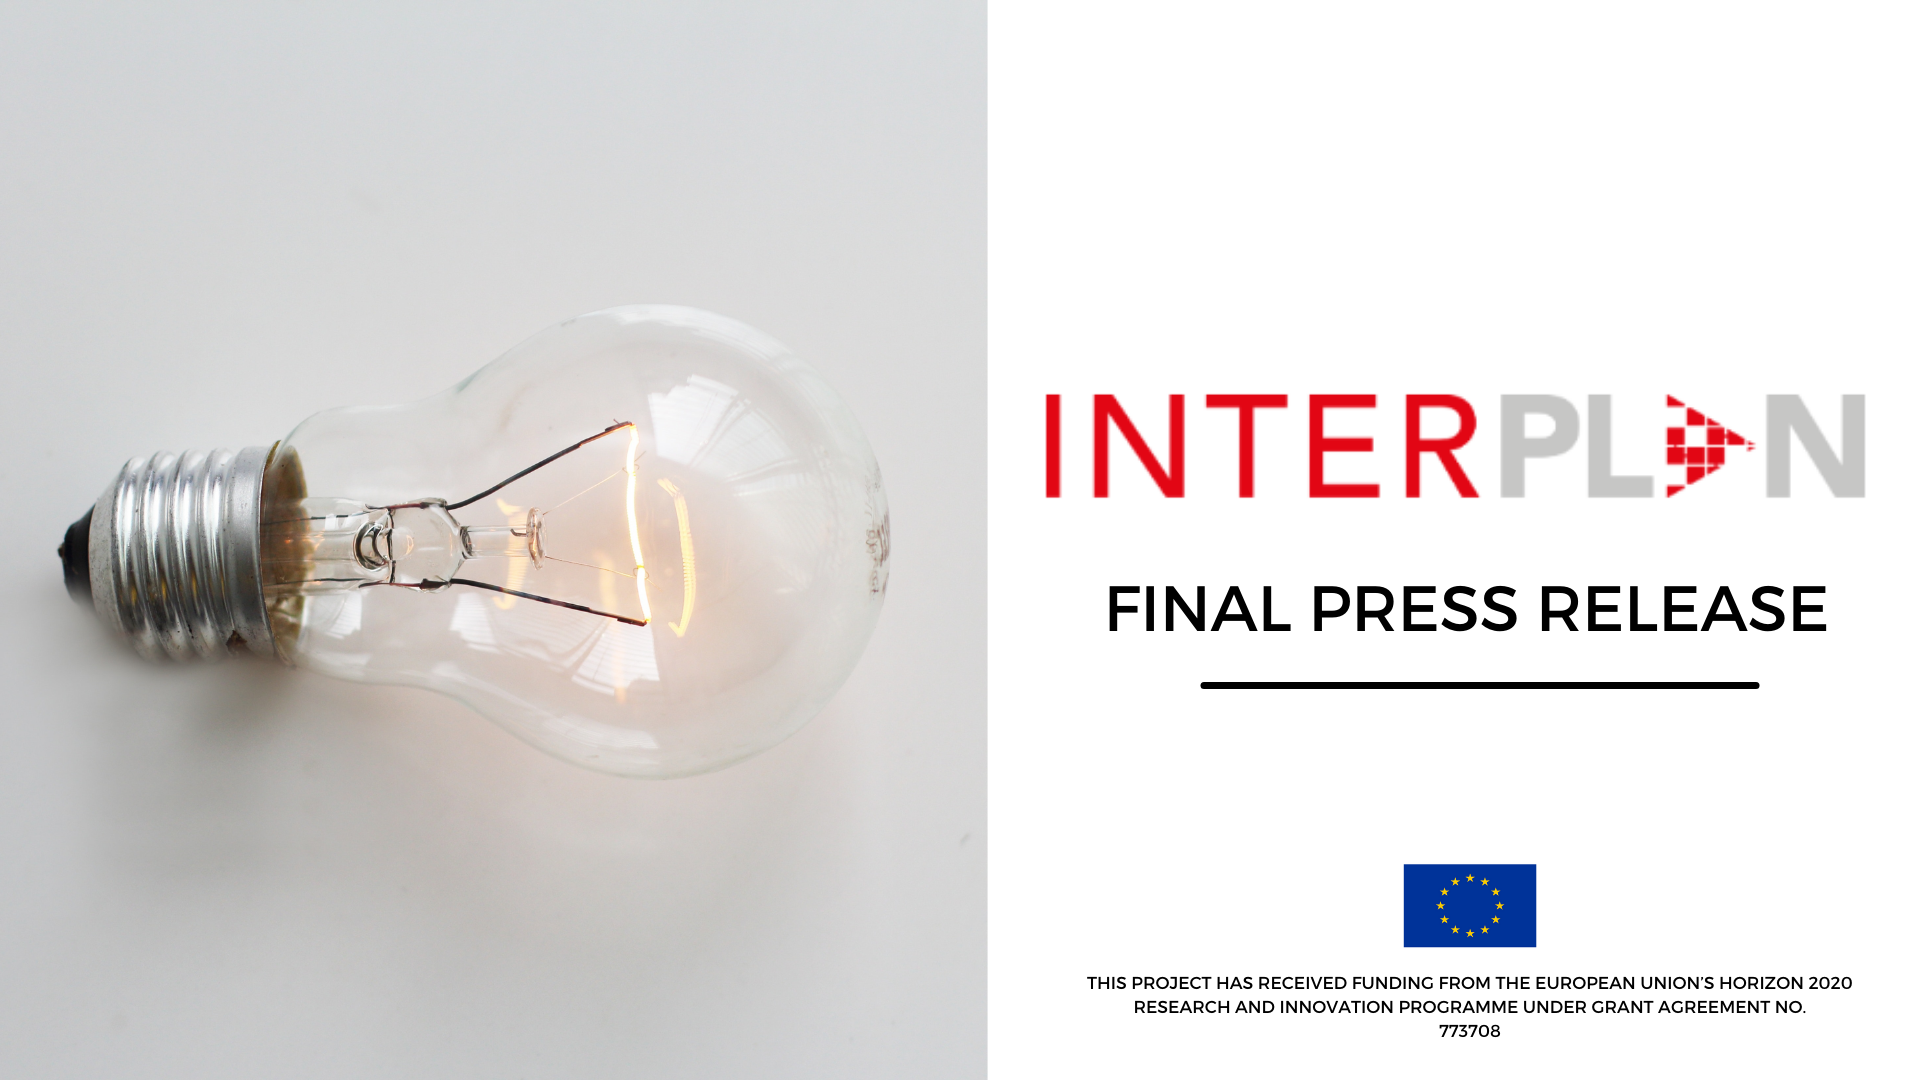 Press Release: INTERPLAN project presents final project results